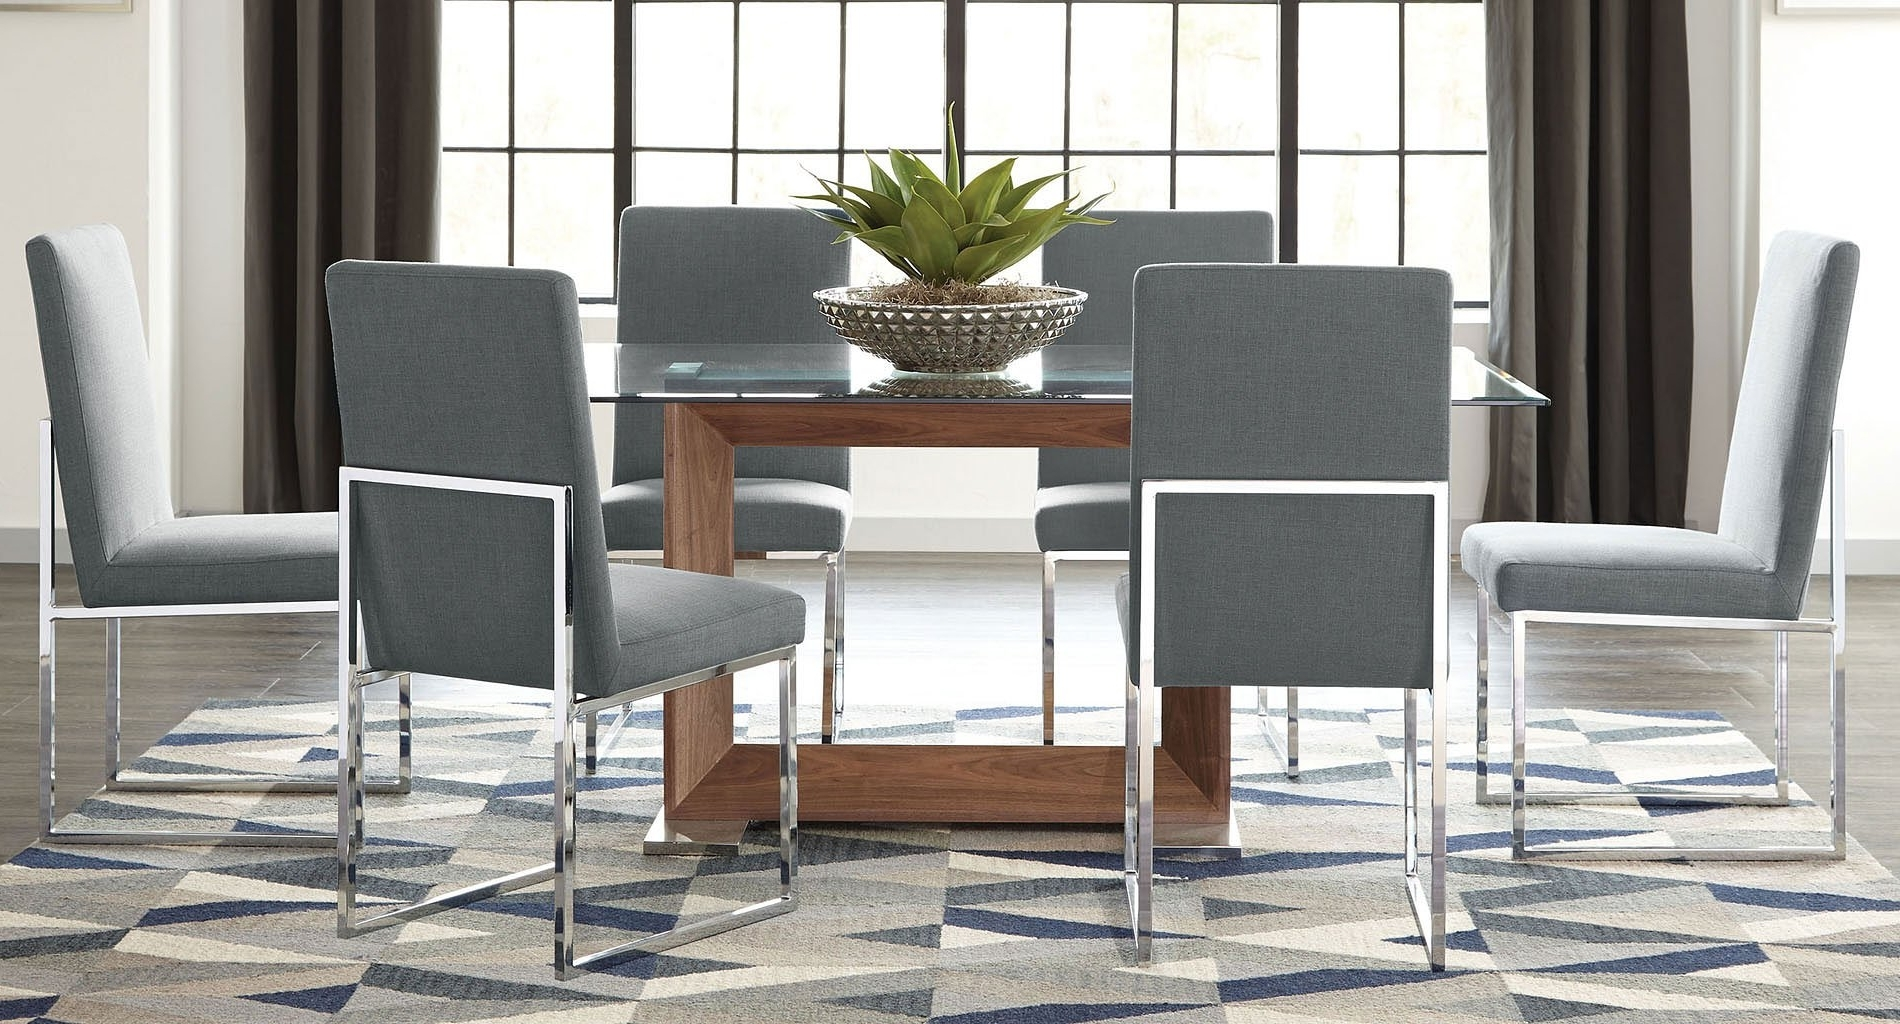 Well Known Jaxon 5 Piece Round Dining Sets With Upholstered Chairs Throughout Jackson Modern Glass Dining Set W/ Grey Chairs – Dining Room And (View 21 of 25)